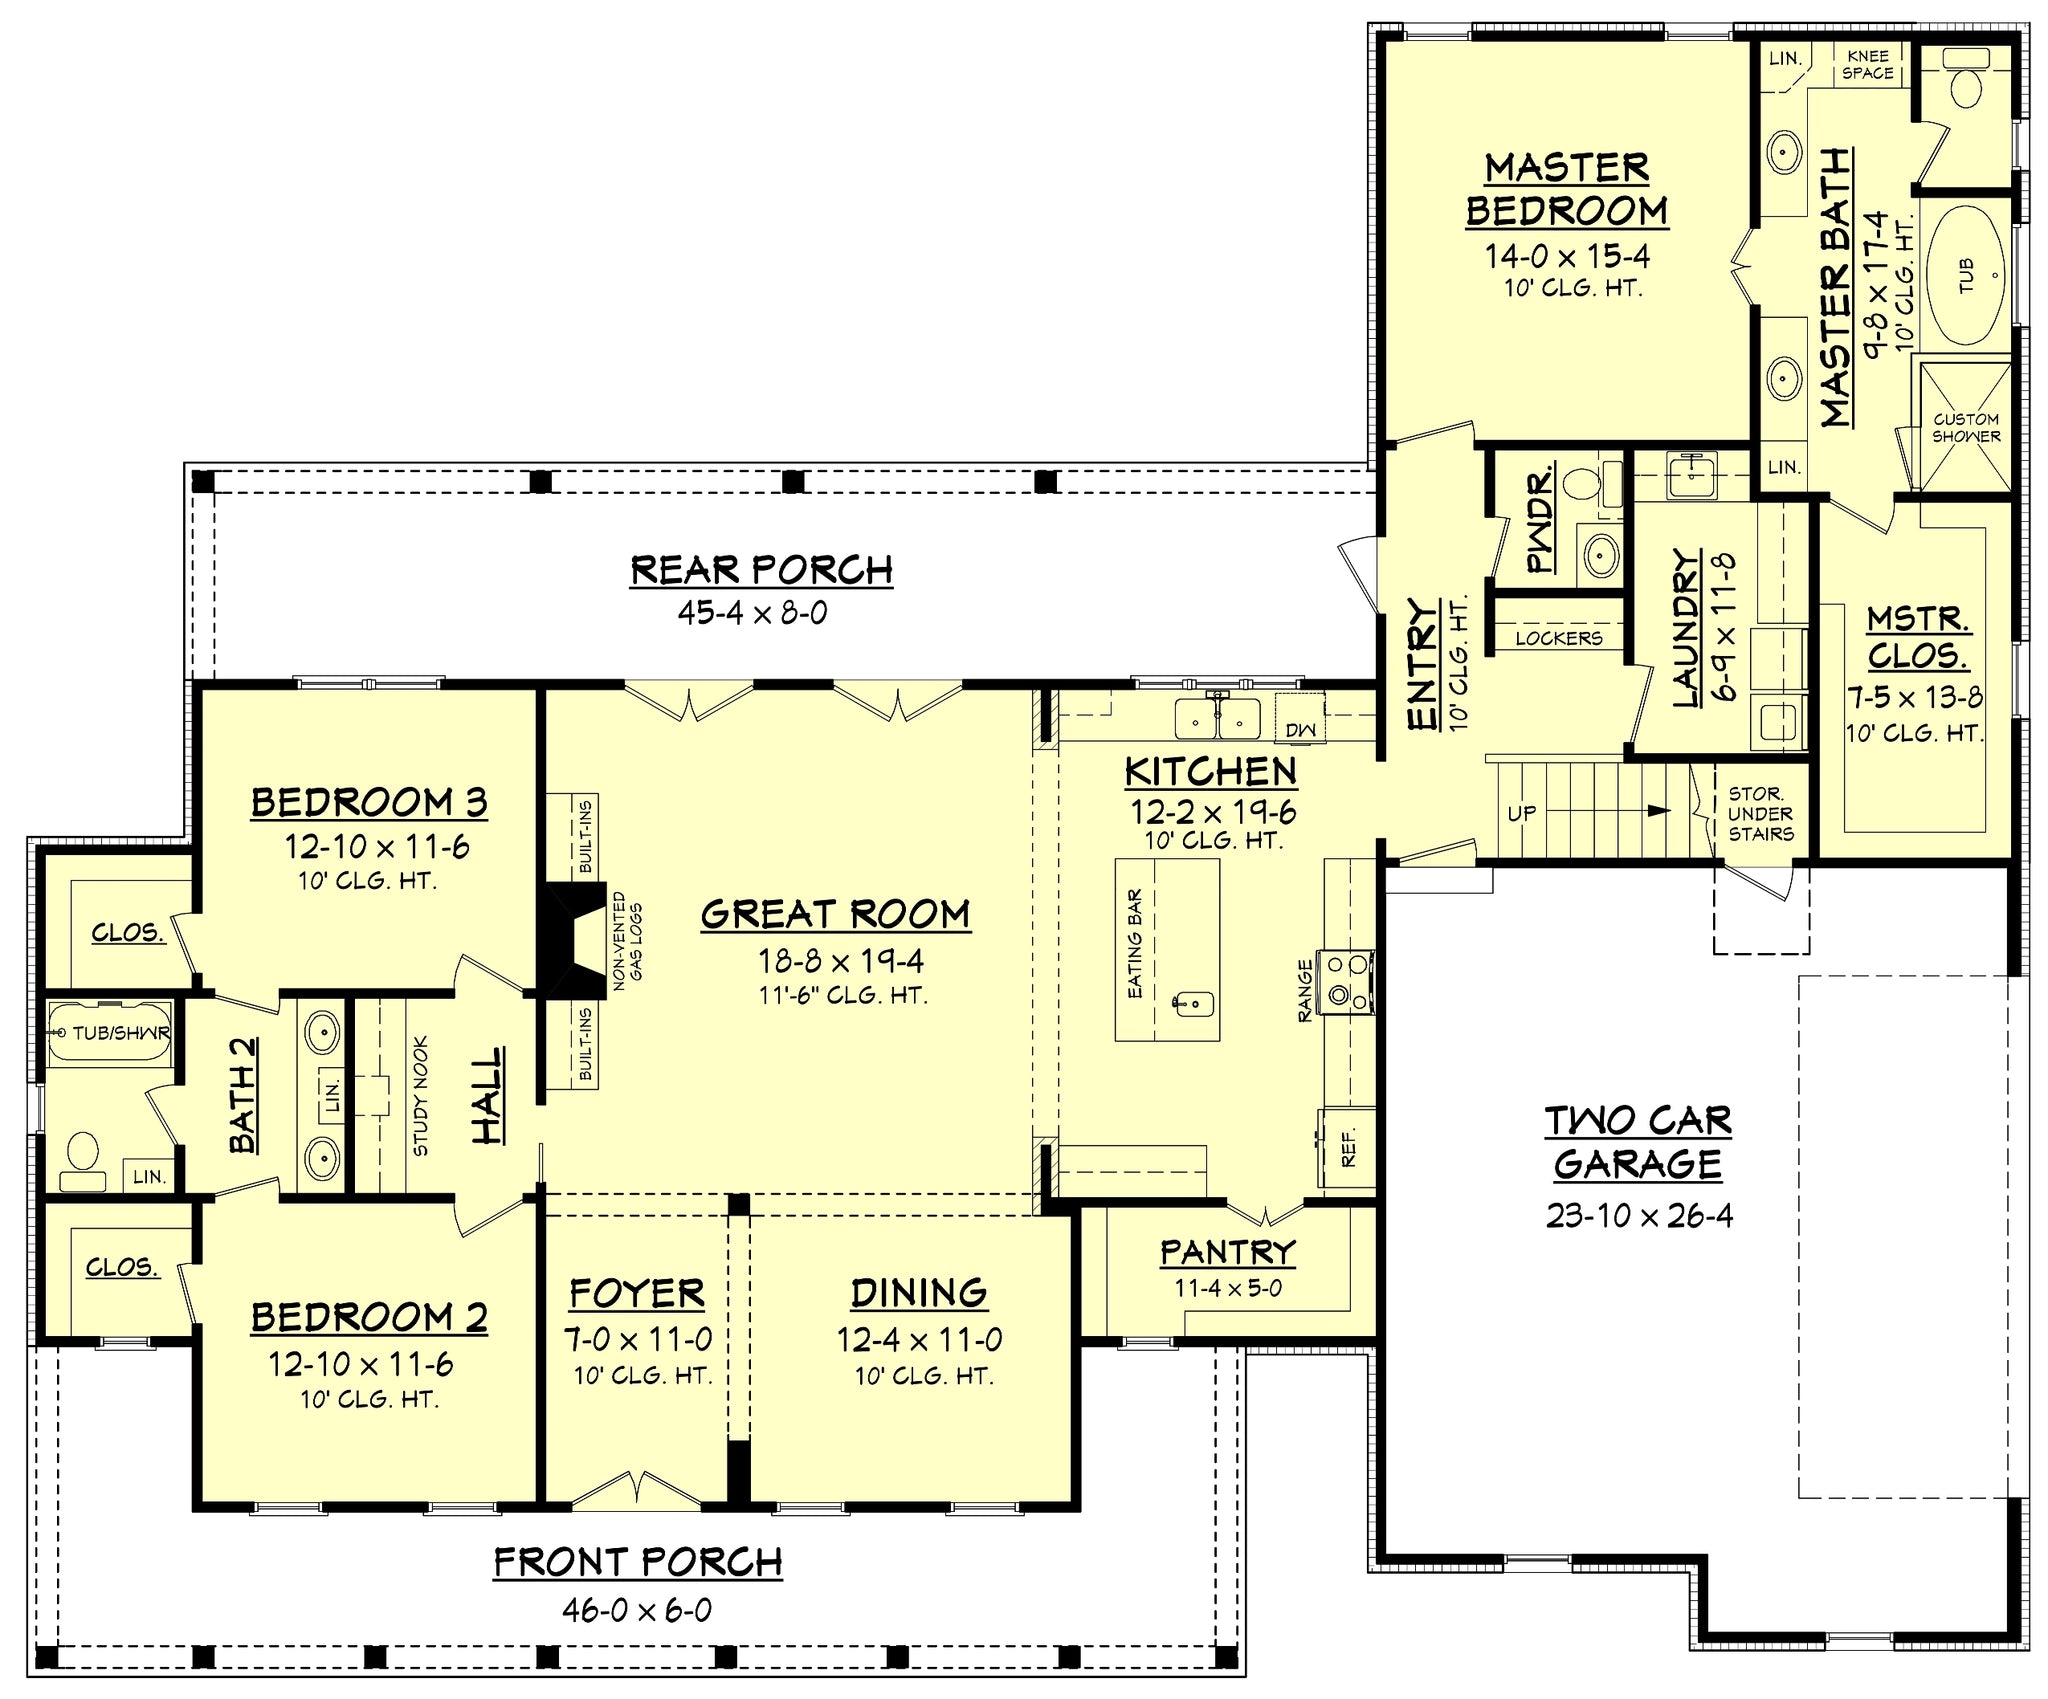 Manor Farm First Floor Plan